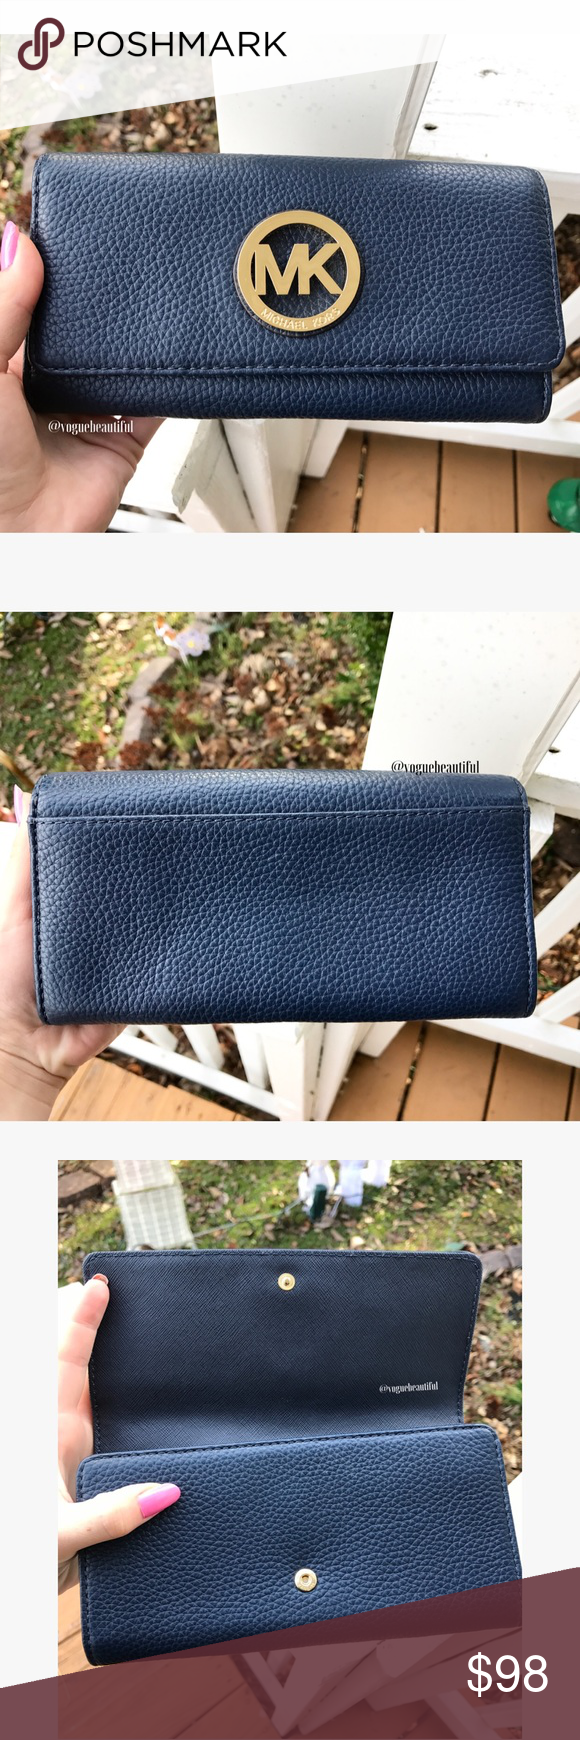 ef77338b495b Michael Kors Fulton Leather Carryall Wallet Navy Soft Venus leather shapes  this sleek wallet design fronted by a medallion plaque. Outfitted with  plenty of ...